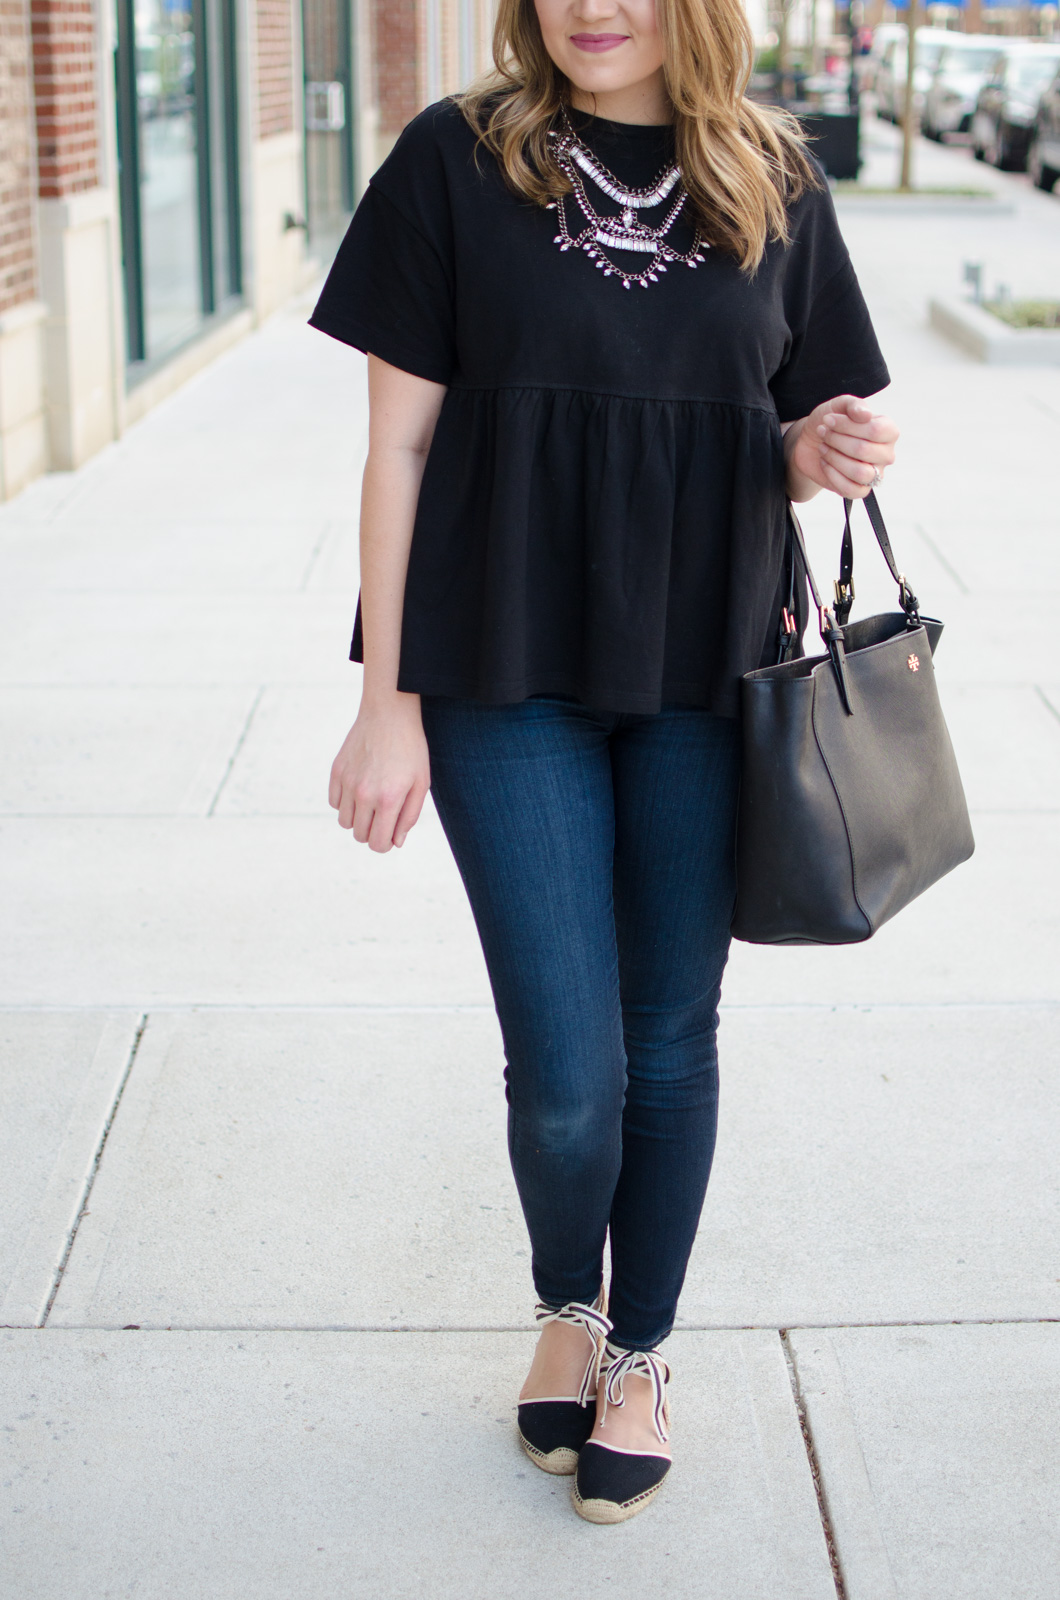 oversized ruffle hem top, high waisted skinny jeans, lace up espadrilles | Click through for more cute weekend outfit ideas or to shop this look! www.bylaurenm.com